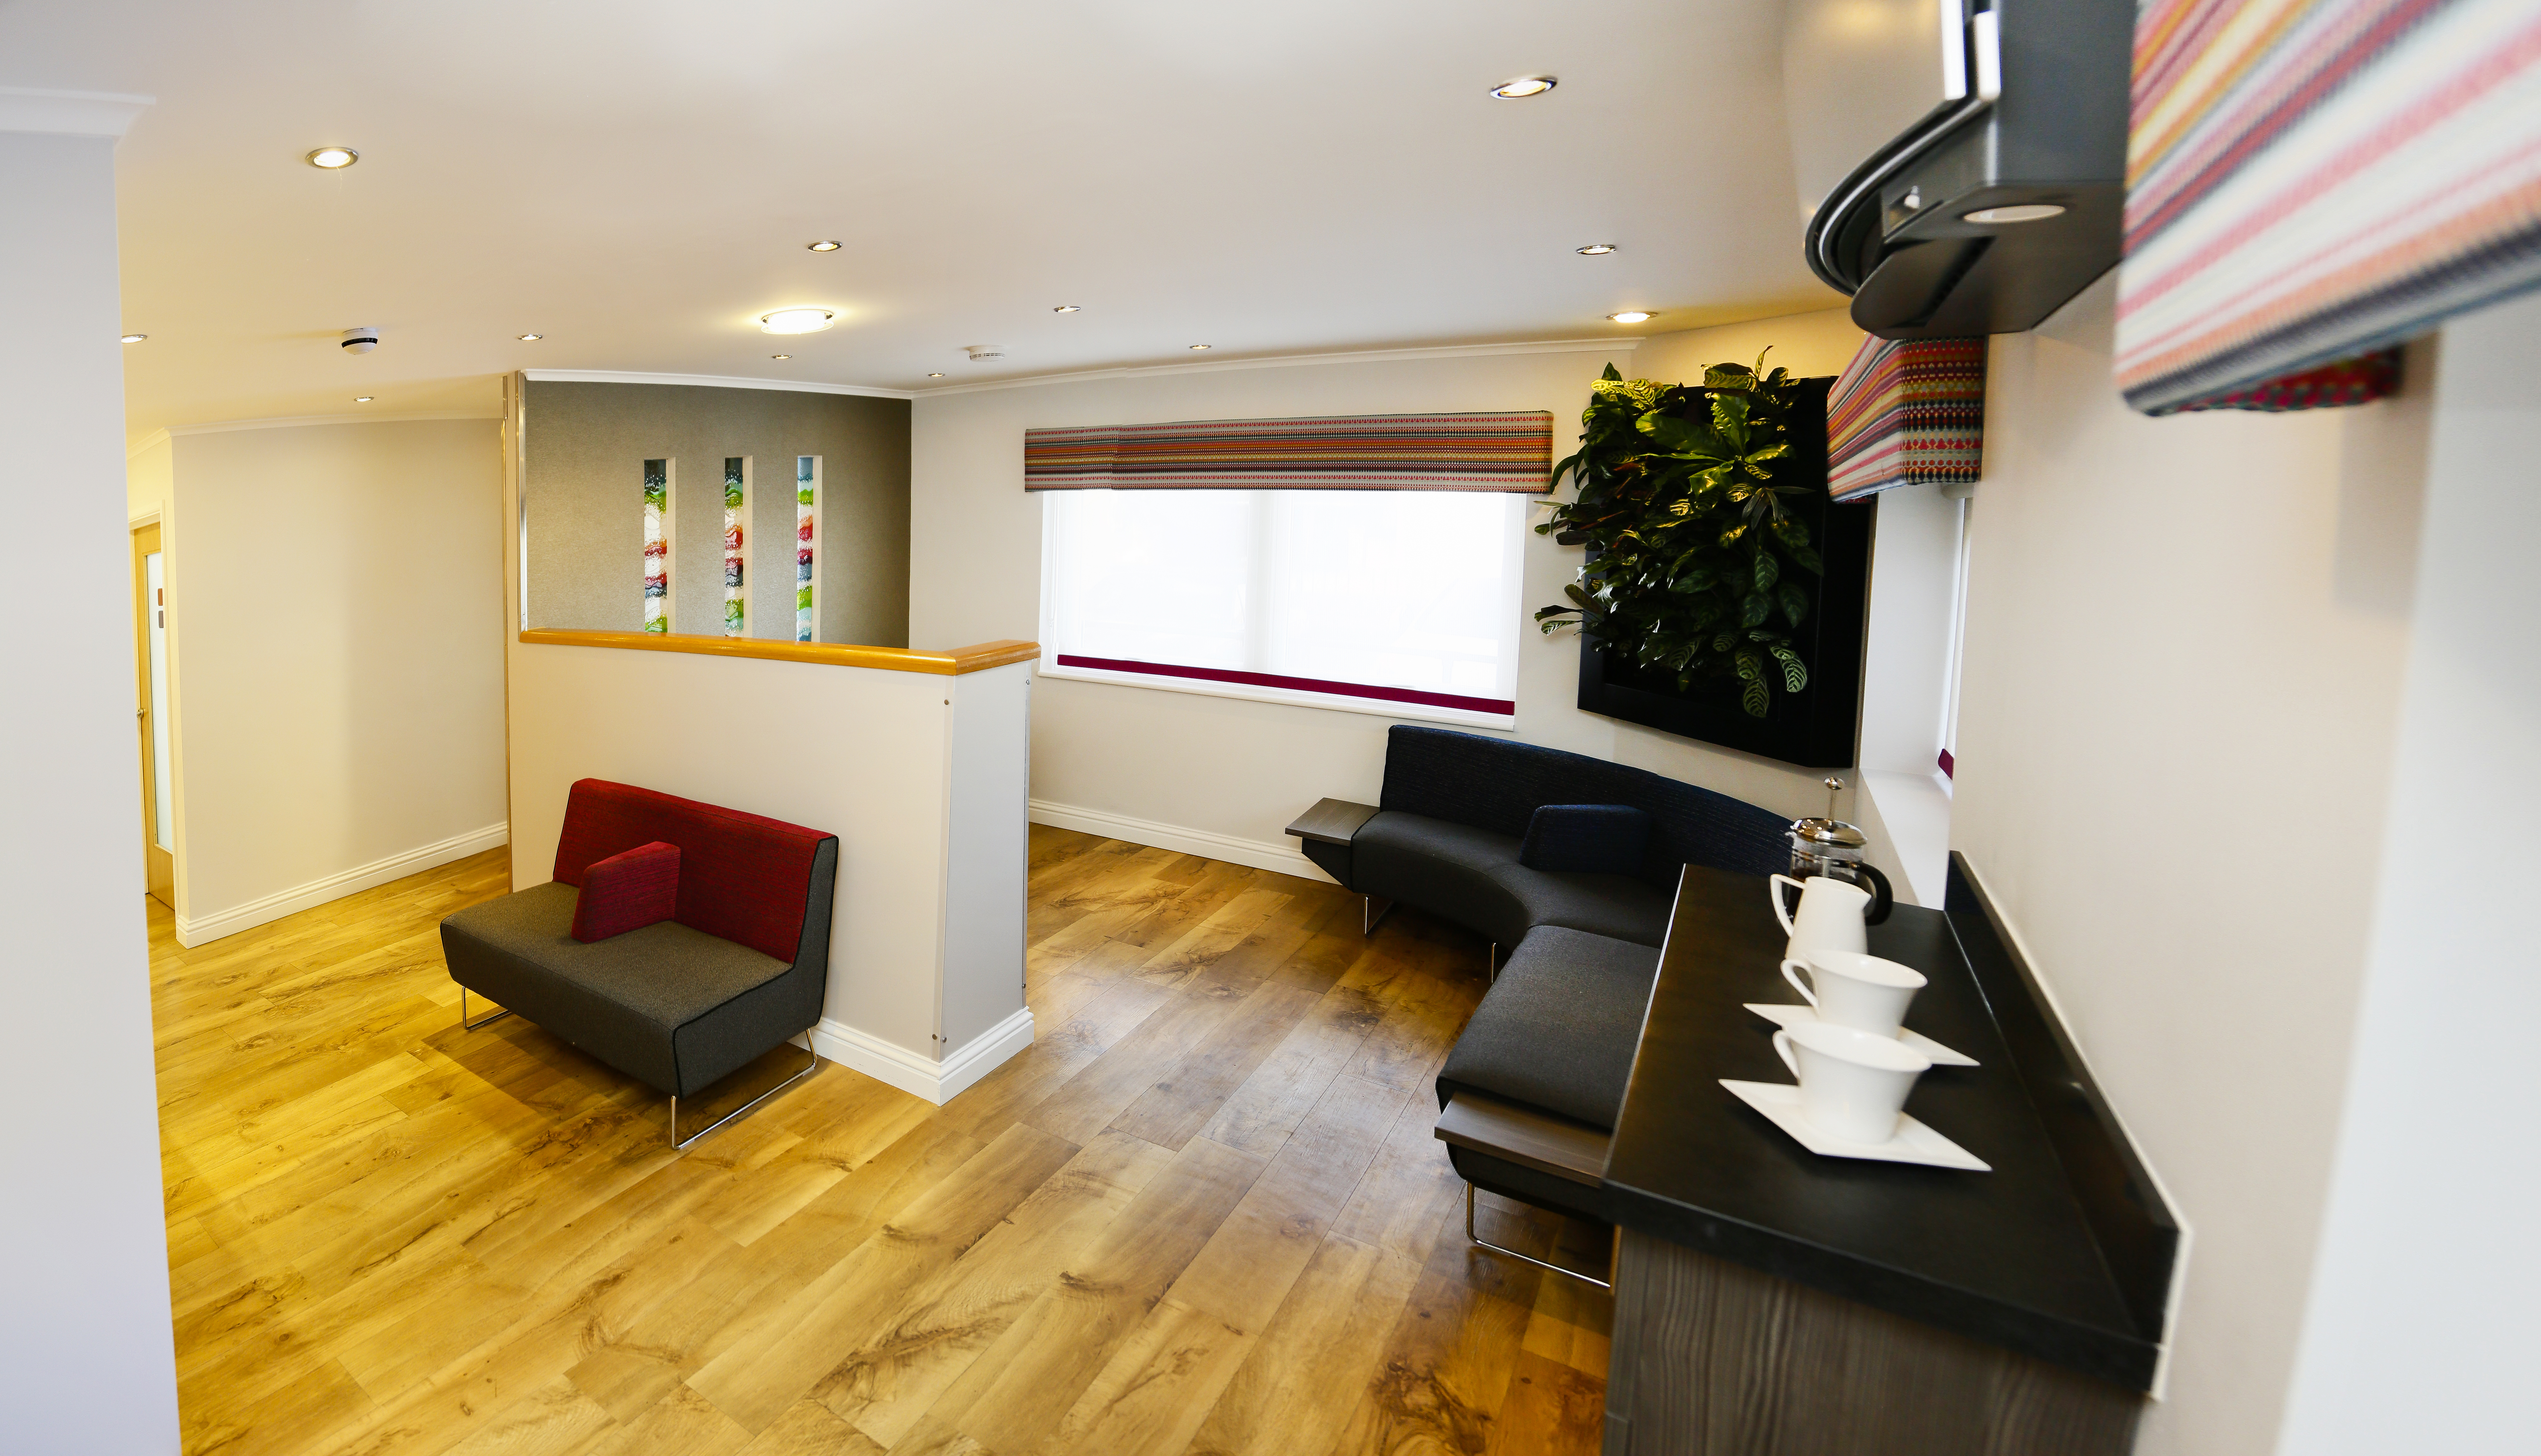 park-lane-orthodontics-015